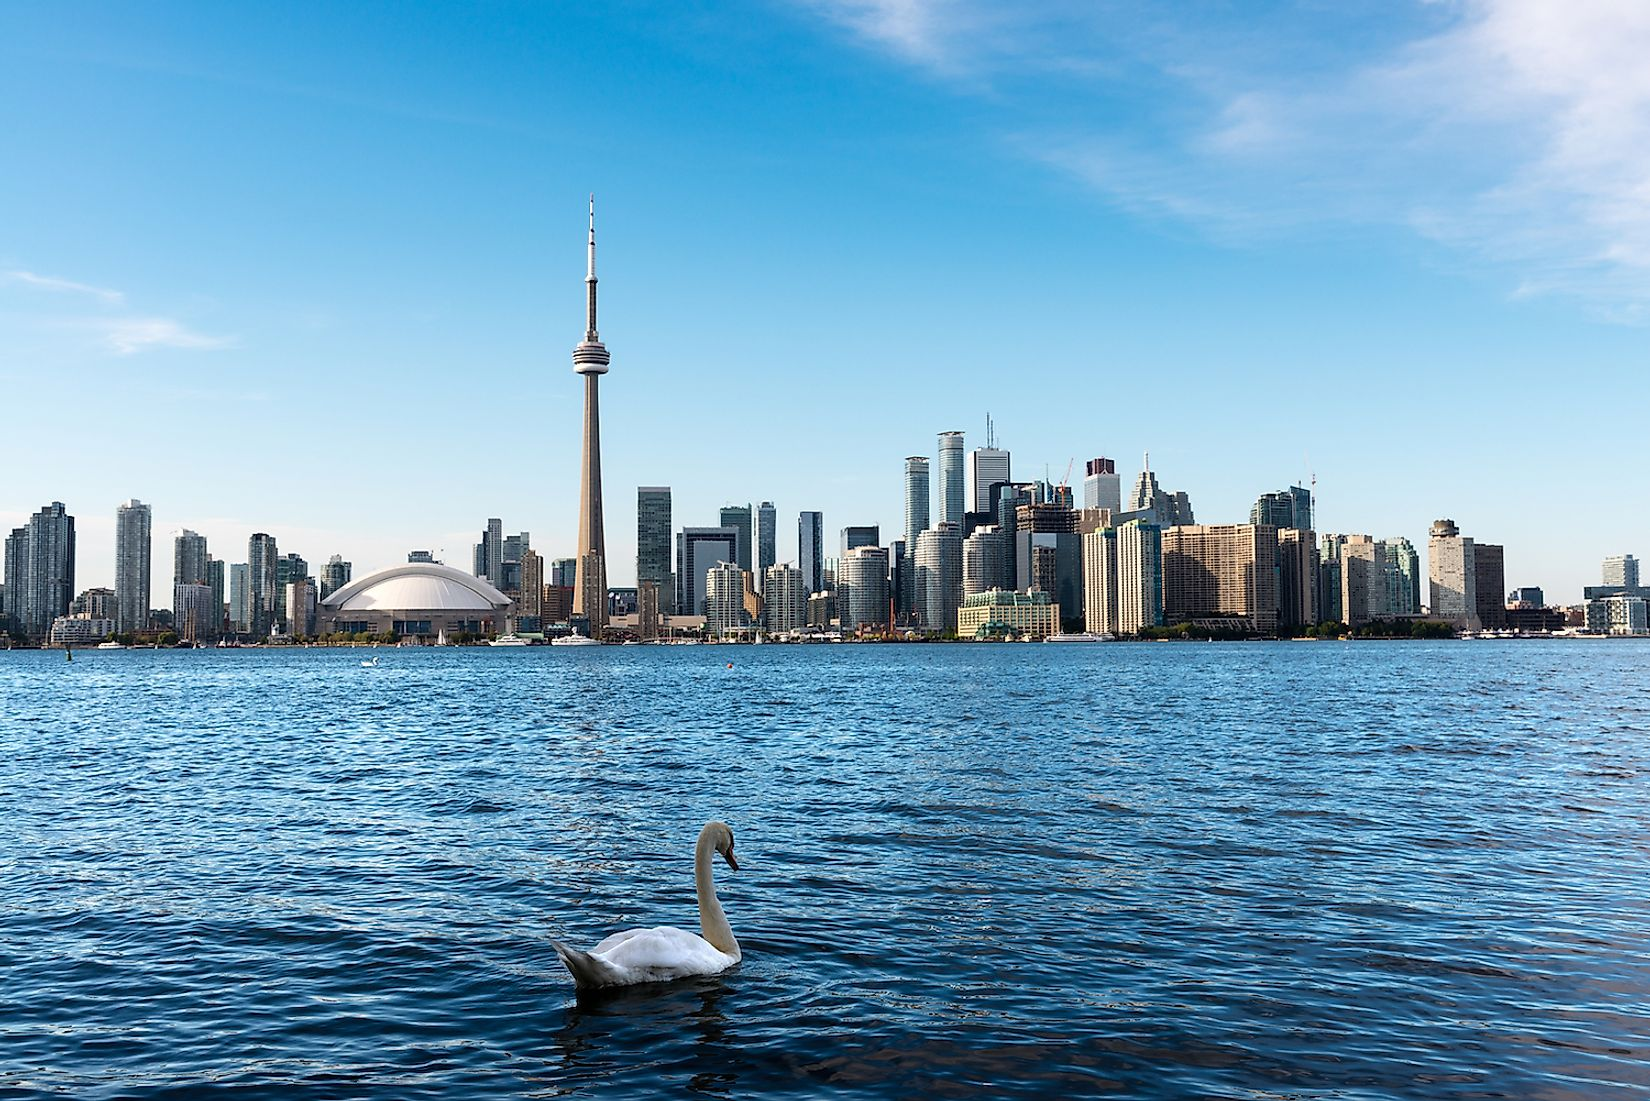 Lake Ontario with the Toronto skyline in the background. Image credit: Andres Garcia Martin/Shutterstock.com